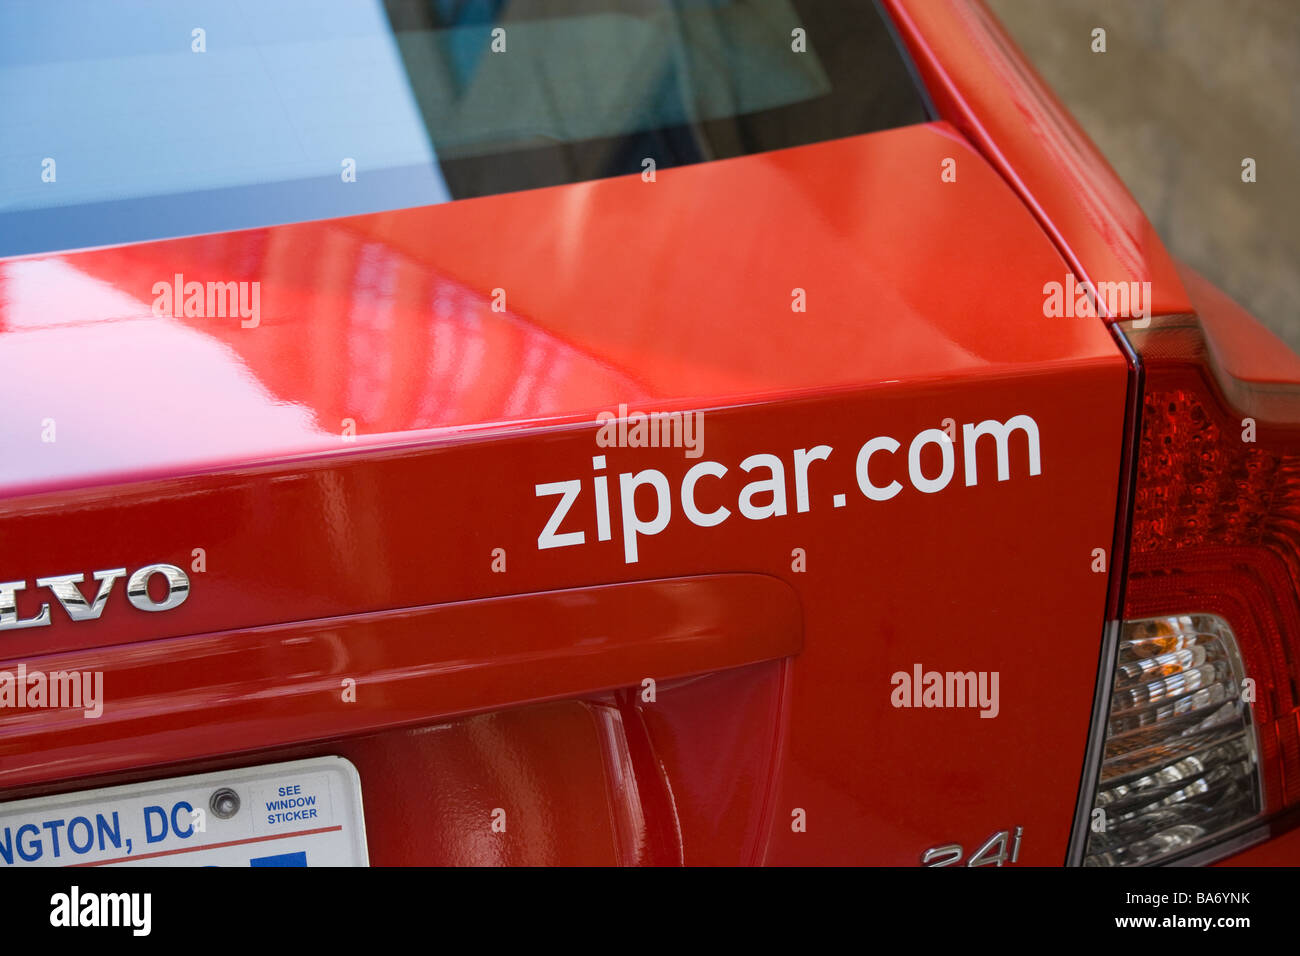 Le nom de domaine internet Zipcar.com sur le tronc, coffre d'une voiture Volvo rouge à Washington DC, Etats Photo Stock